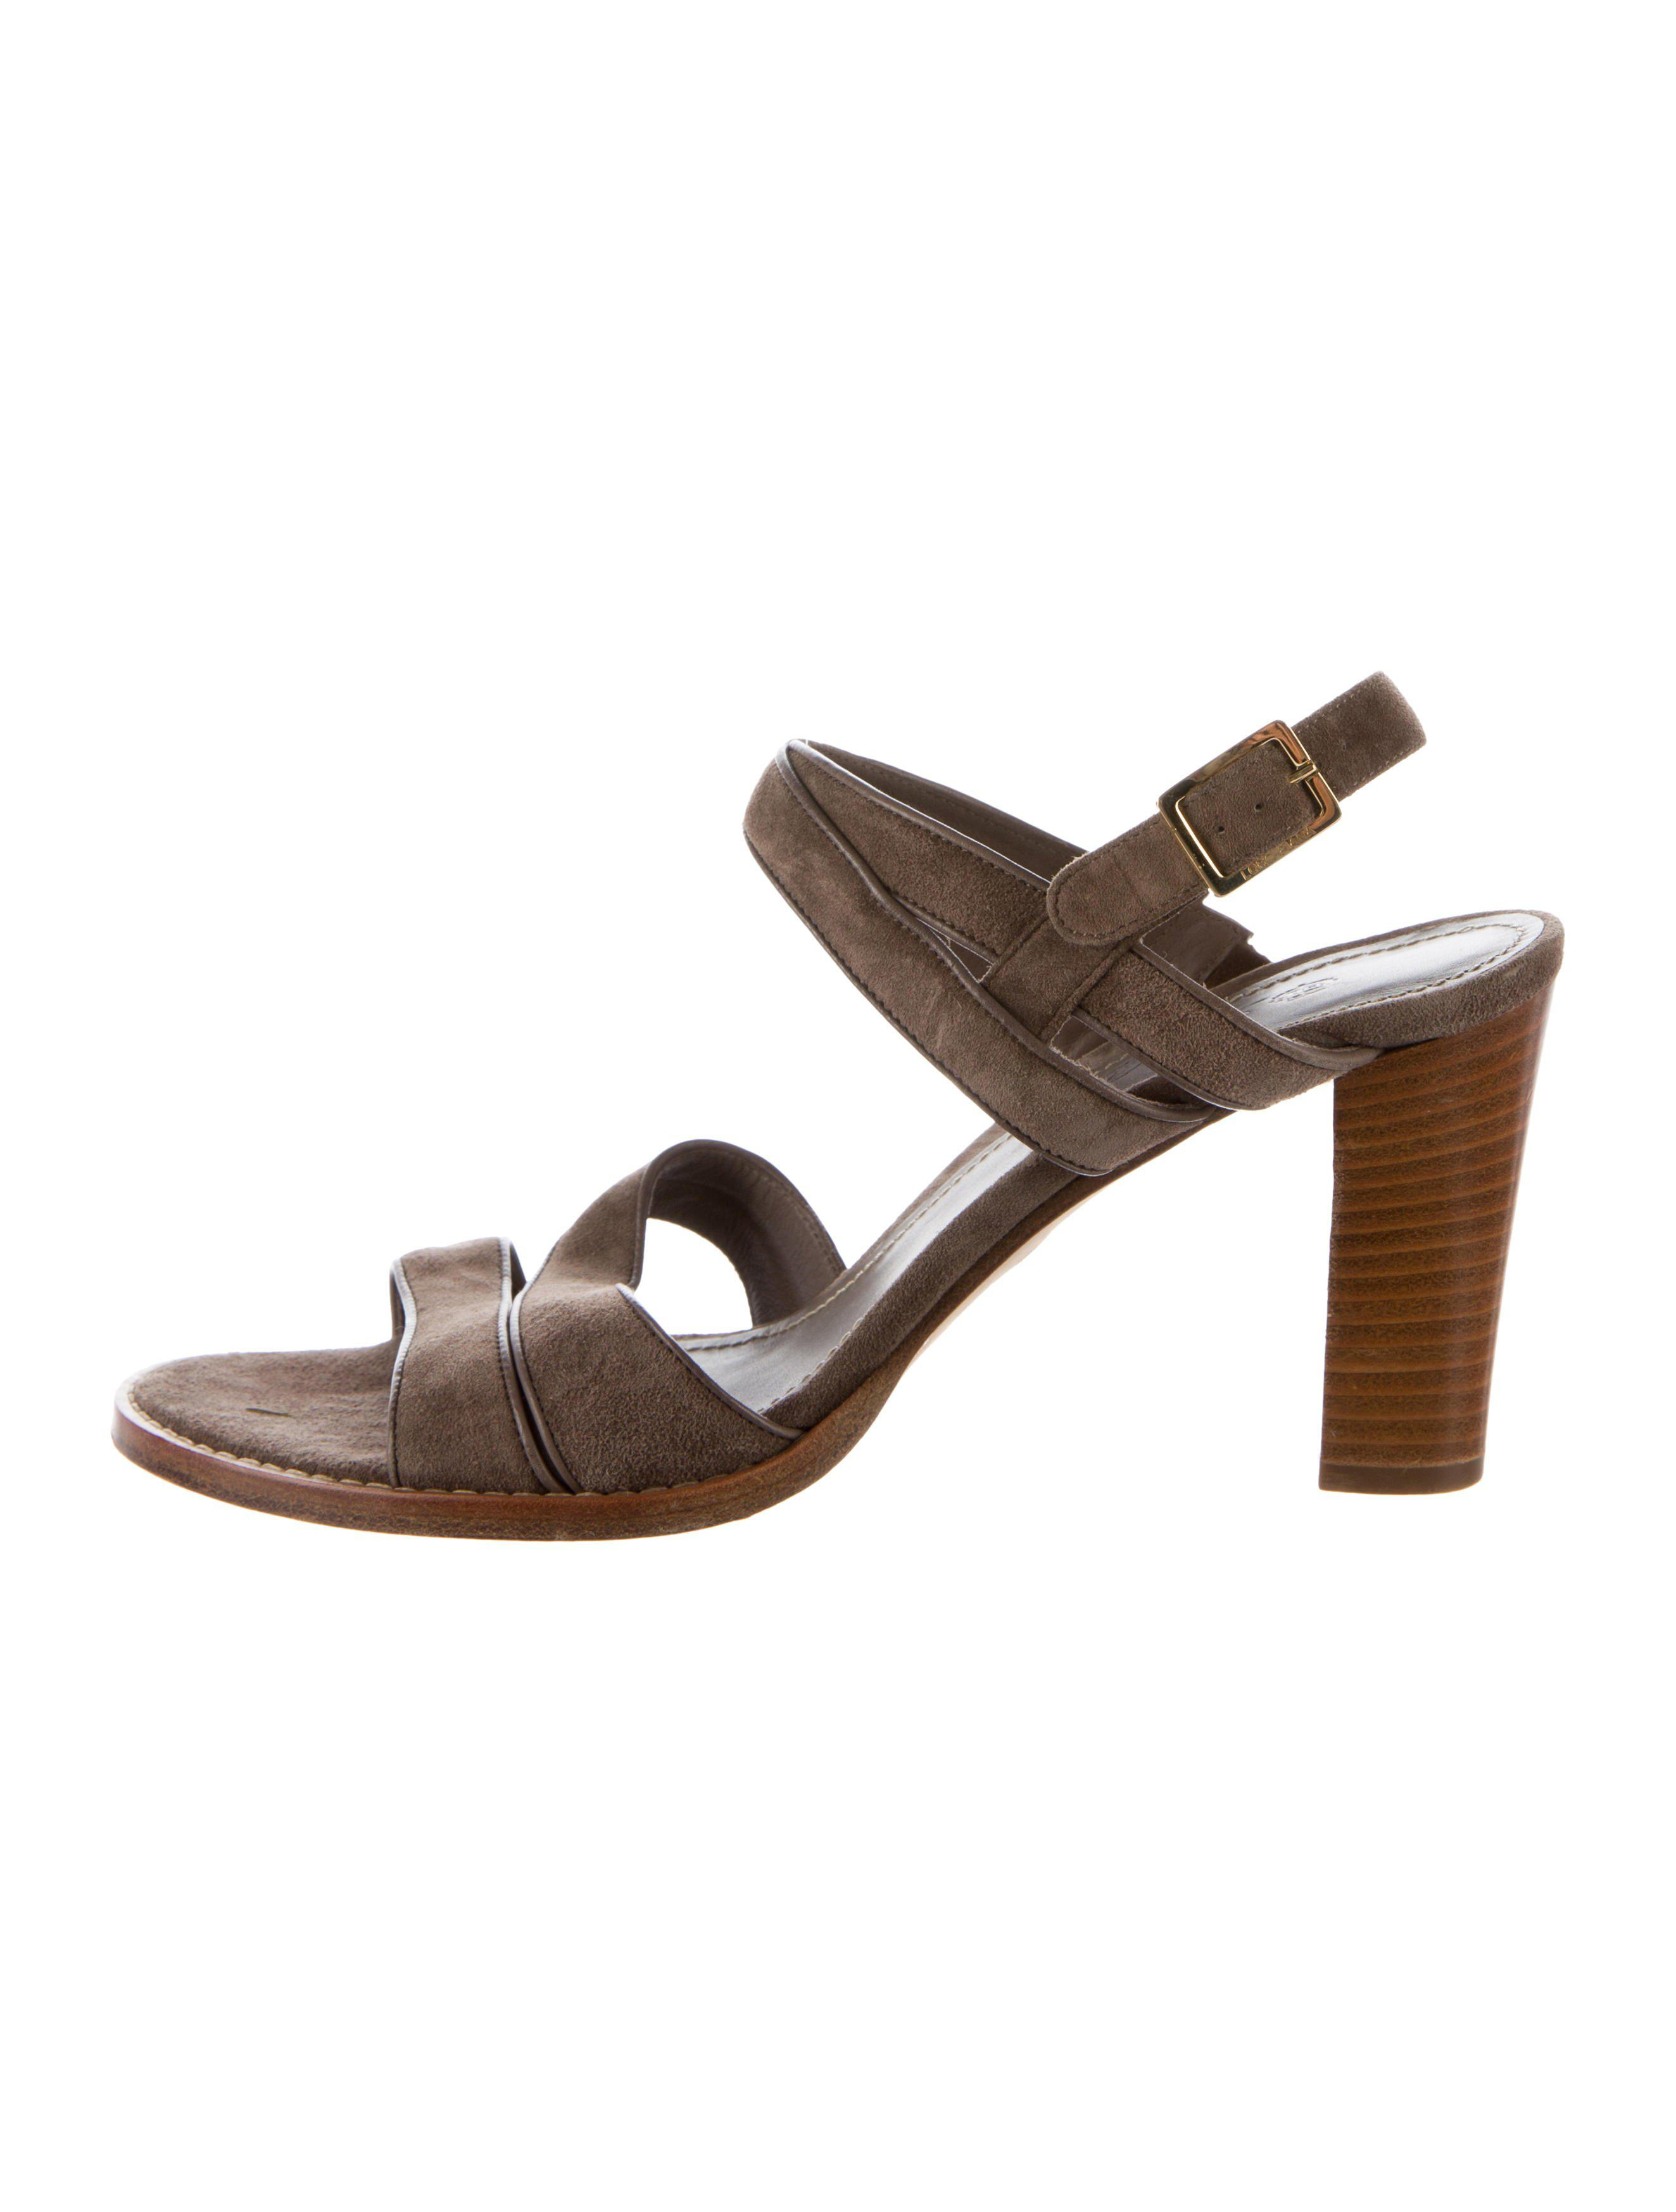 manchester great sale cheap online Loro Piana Leather Multistrap Sandals in China cheap price Twyv5dSi